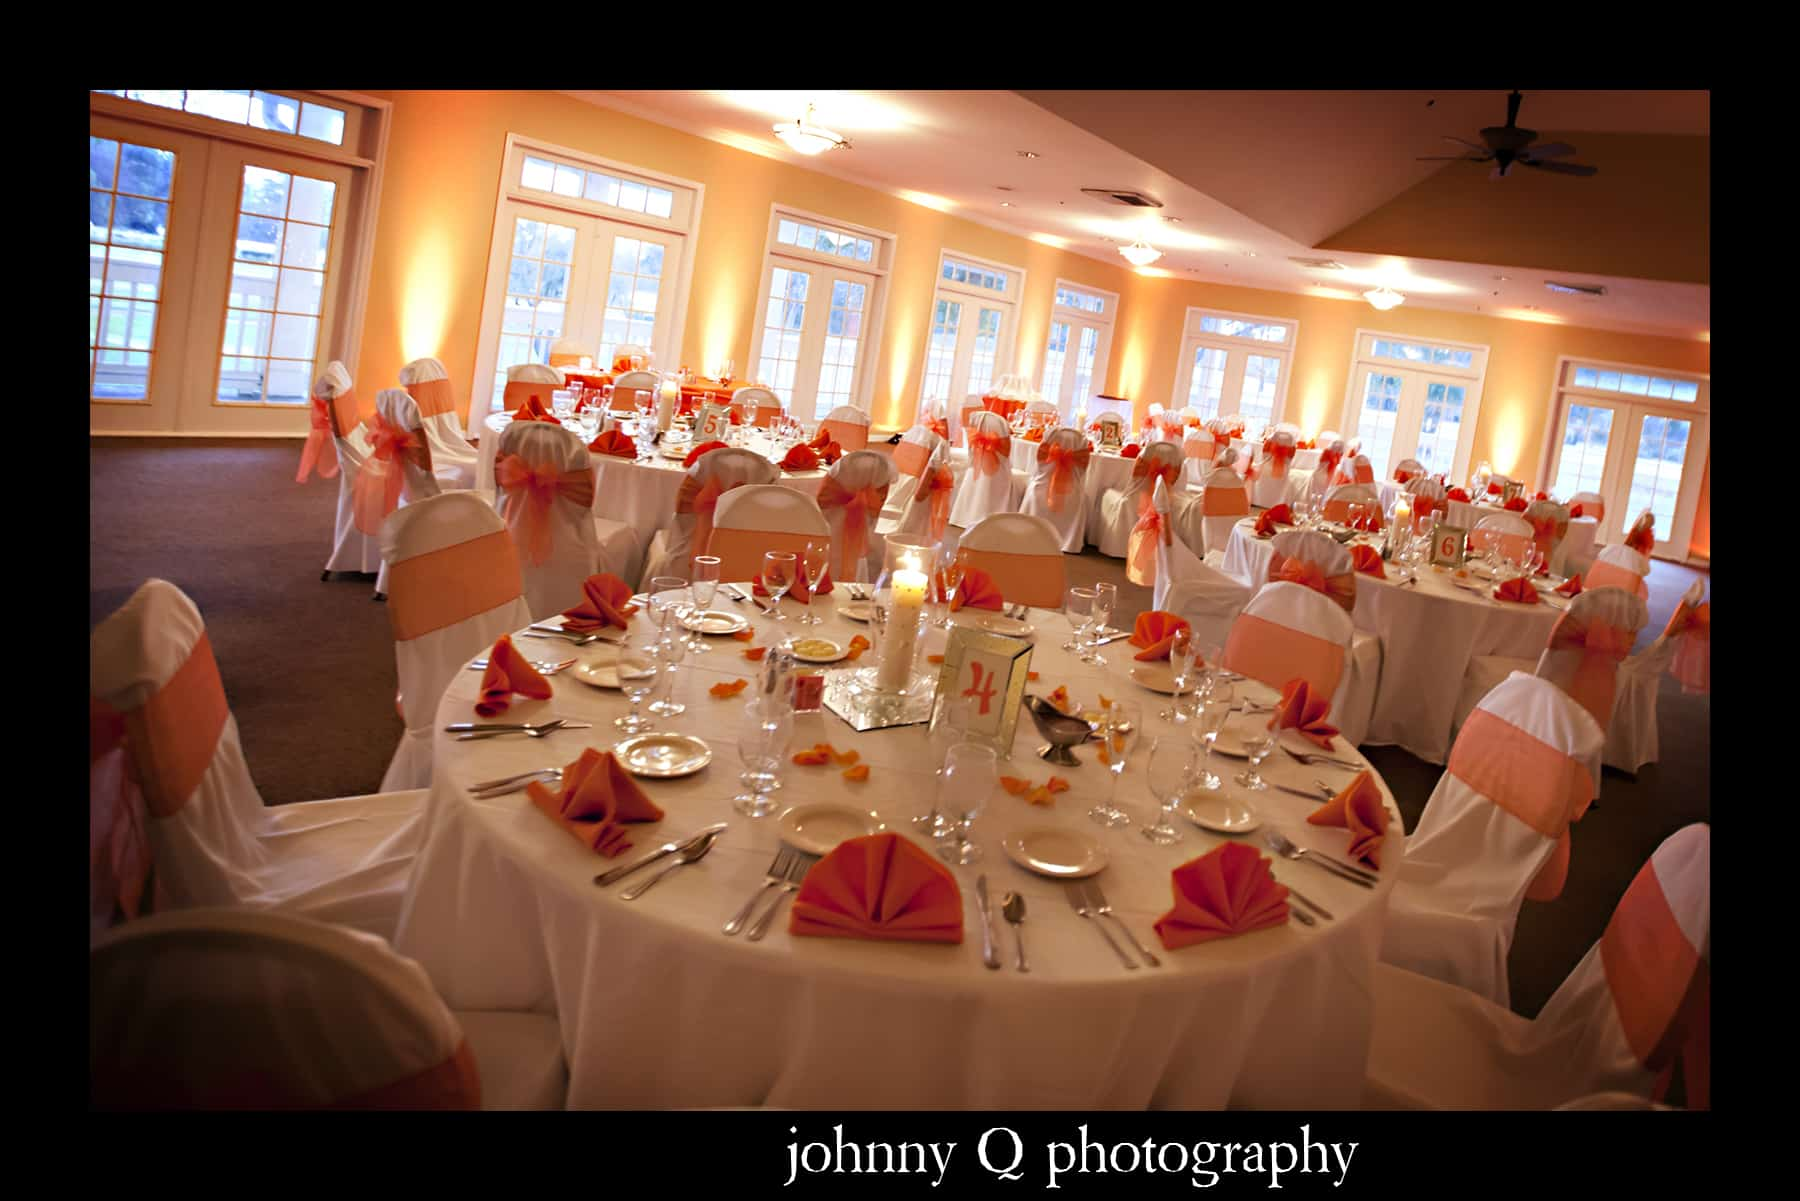 orlando wedding dj, our dj rocks, tuscawilla country club wedding, orange uplighting